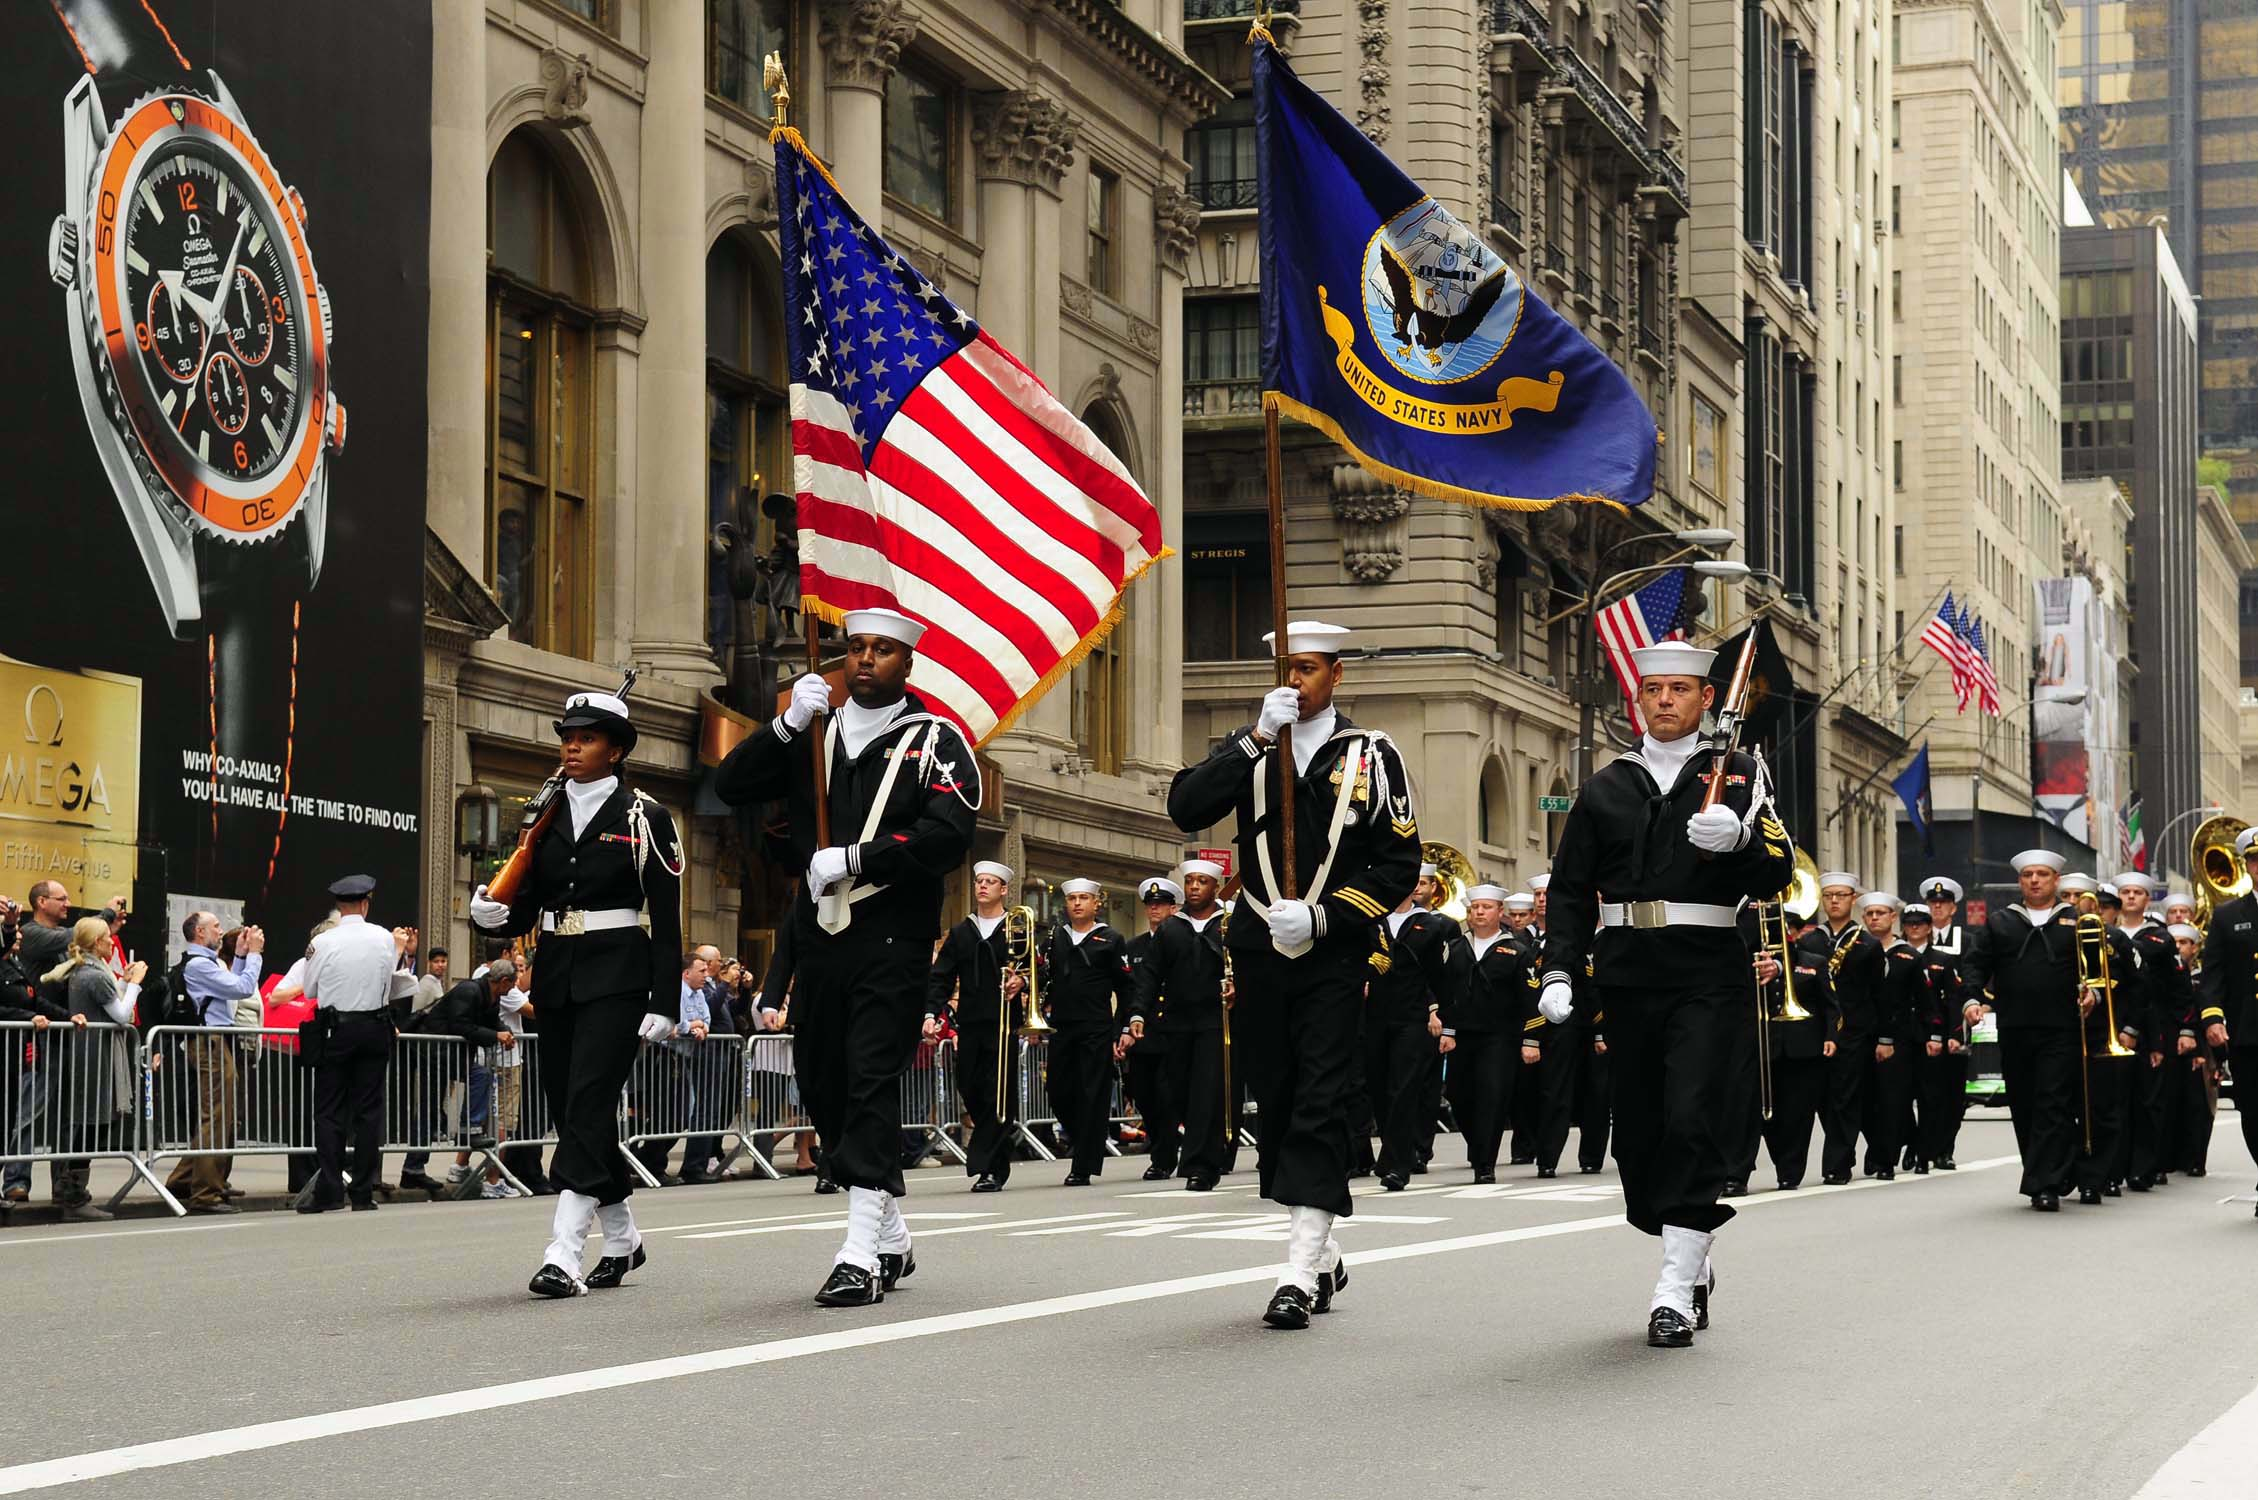 Torna a sfilare a Manhattan la Columbus Day Parade